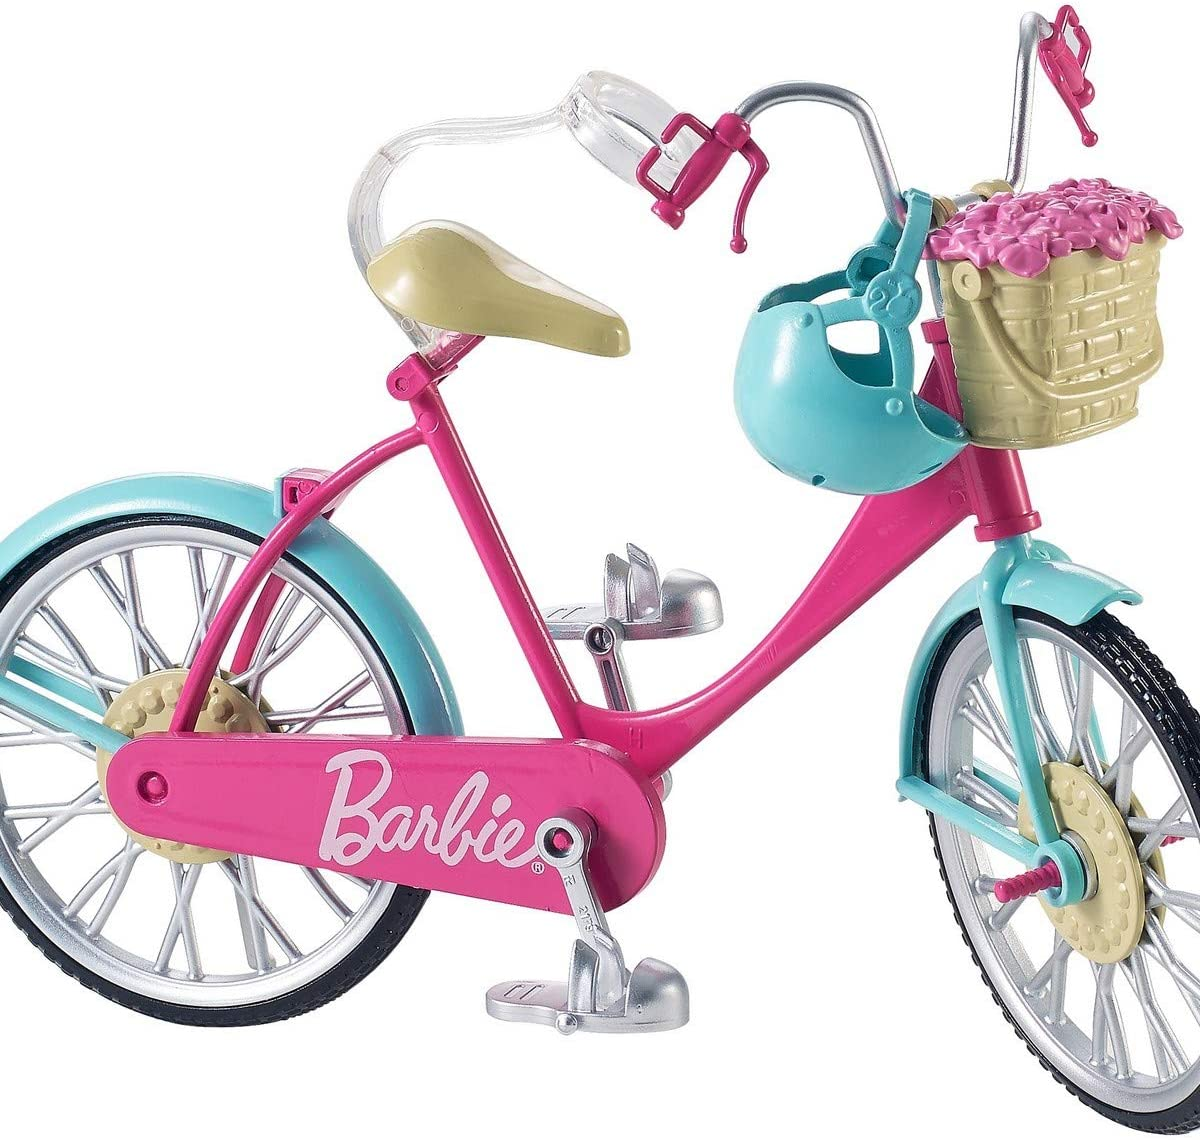 Amazon.es: Barbie Bicicleta, accesorios muñeca barbie (Mattel ...